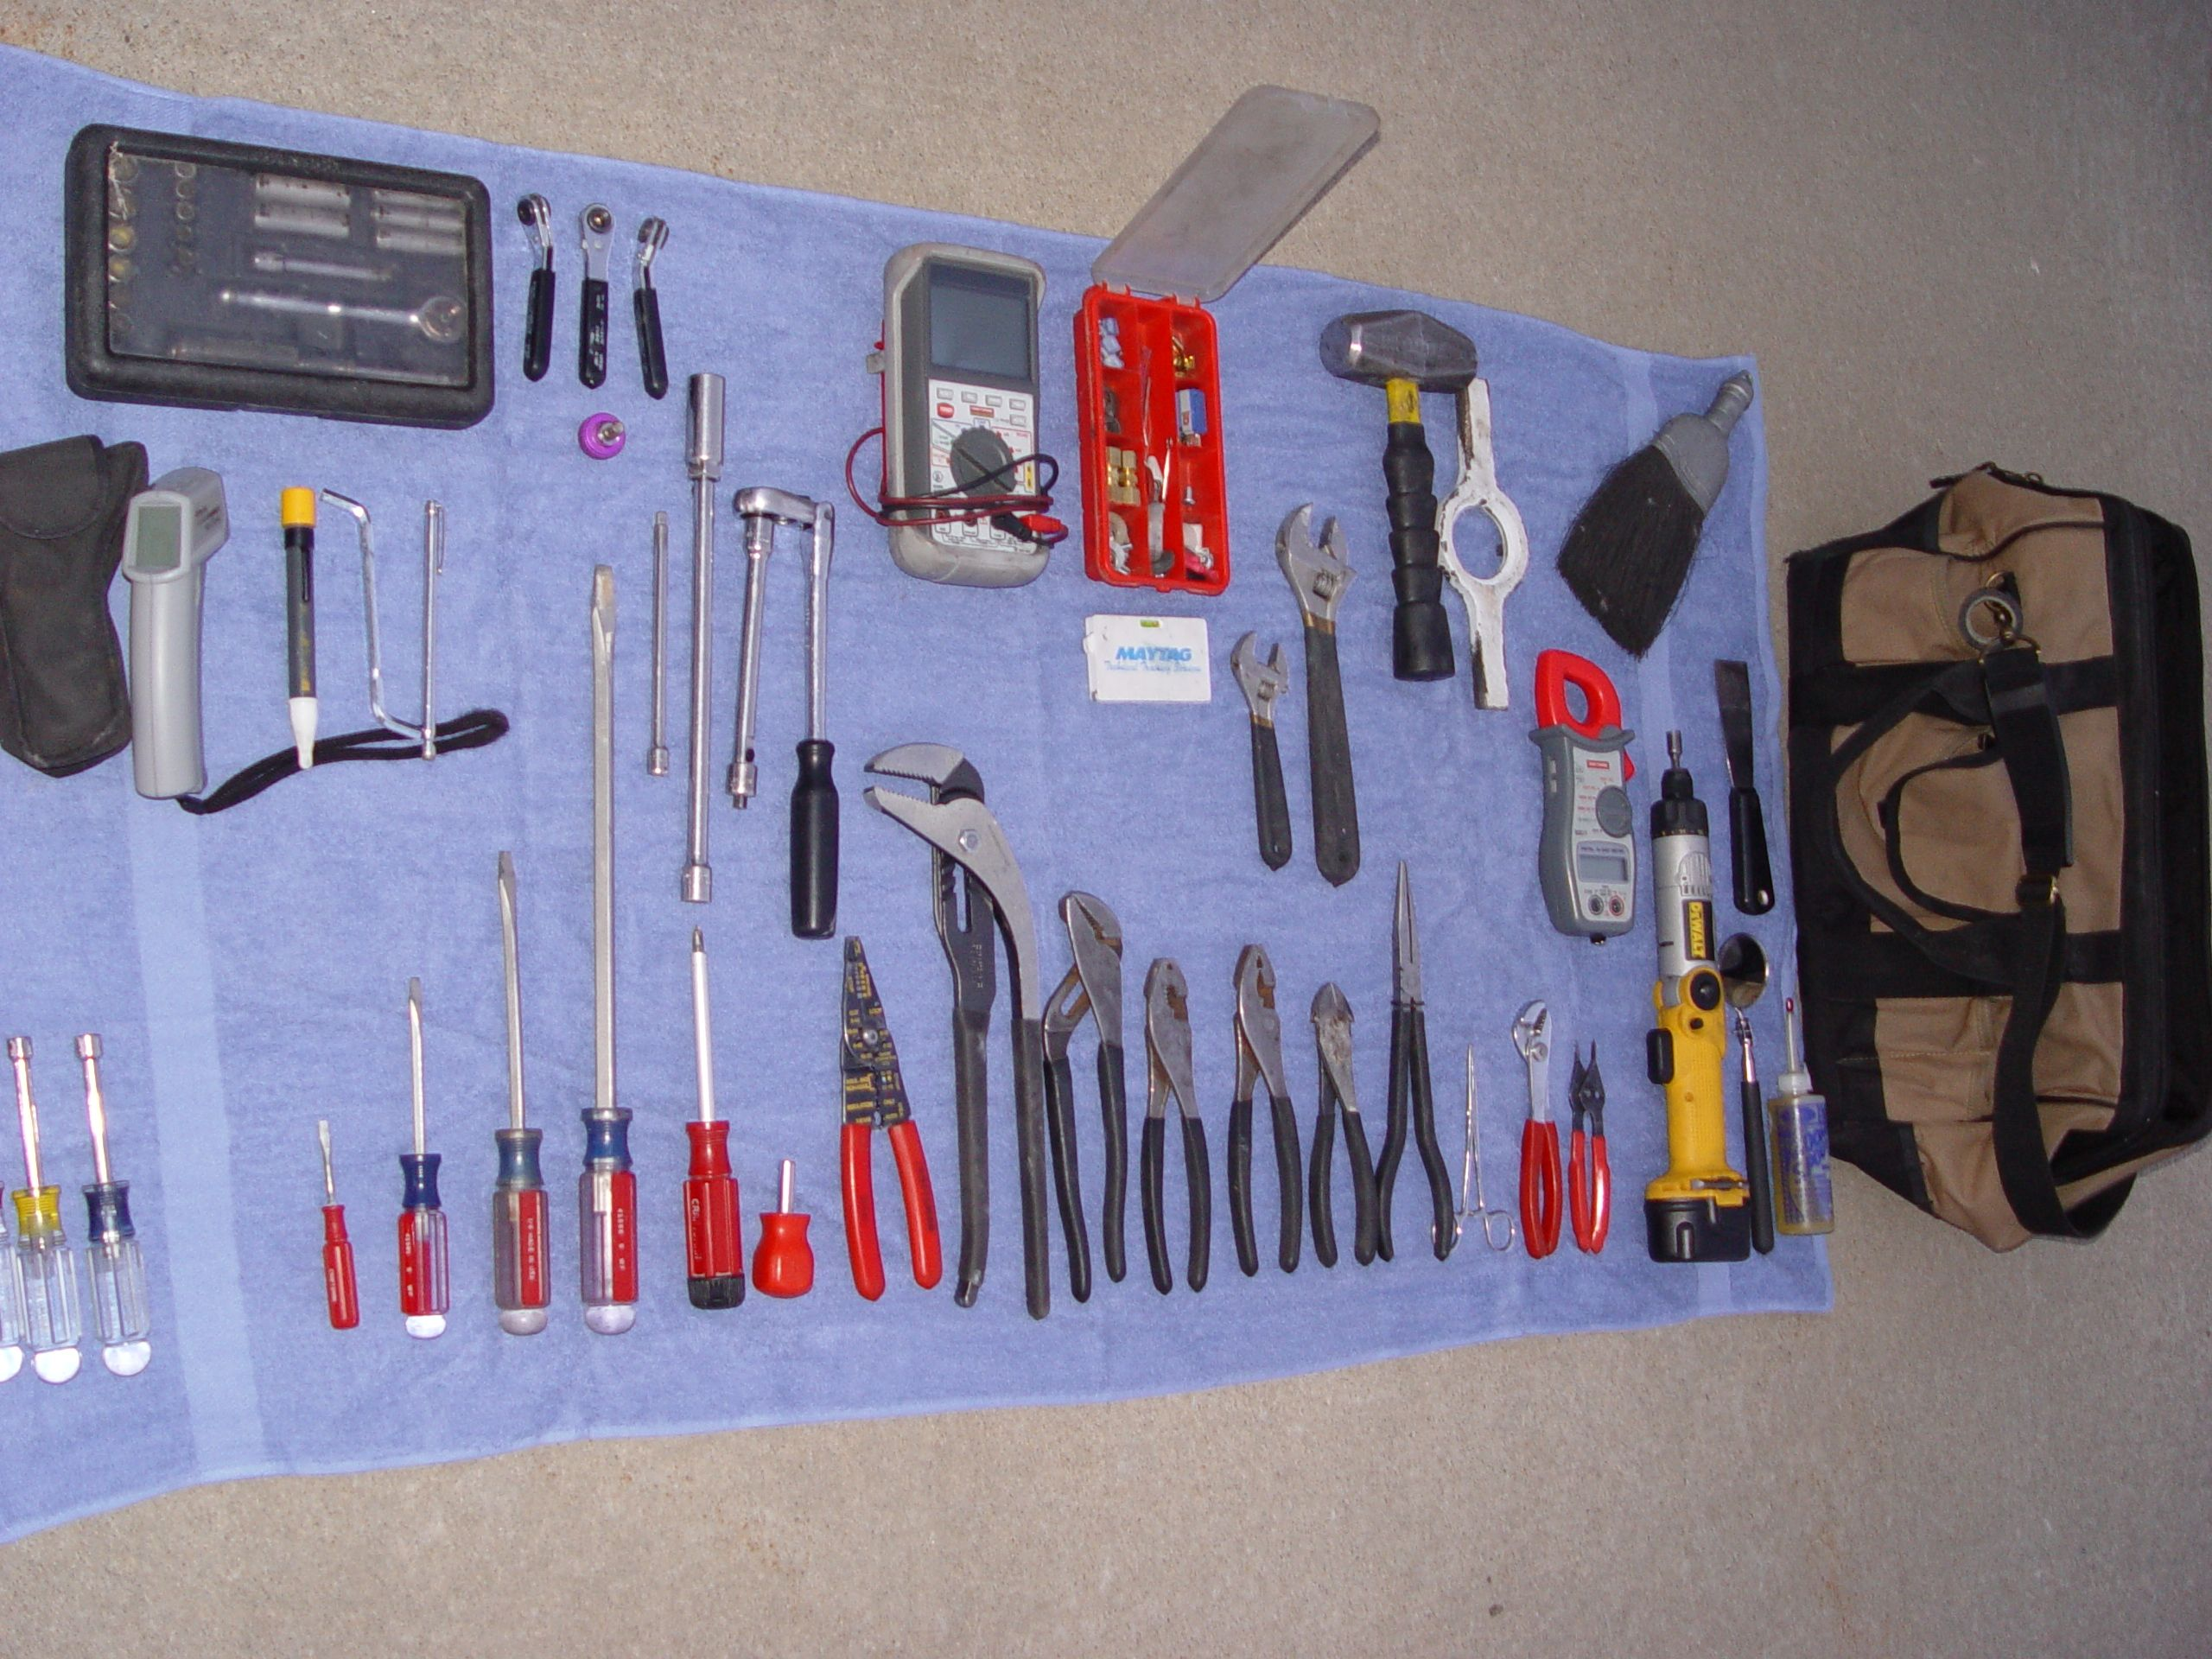 My Appliance Repair Tool Bag Its Amazing What 20 Years Of